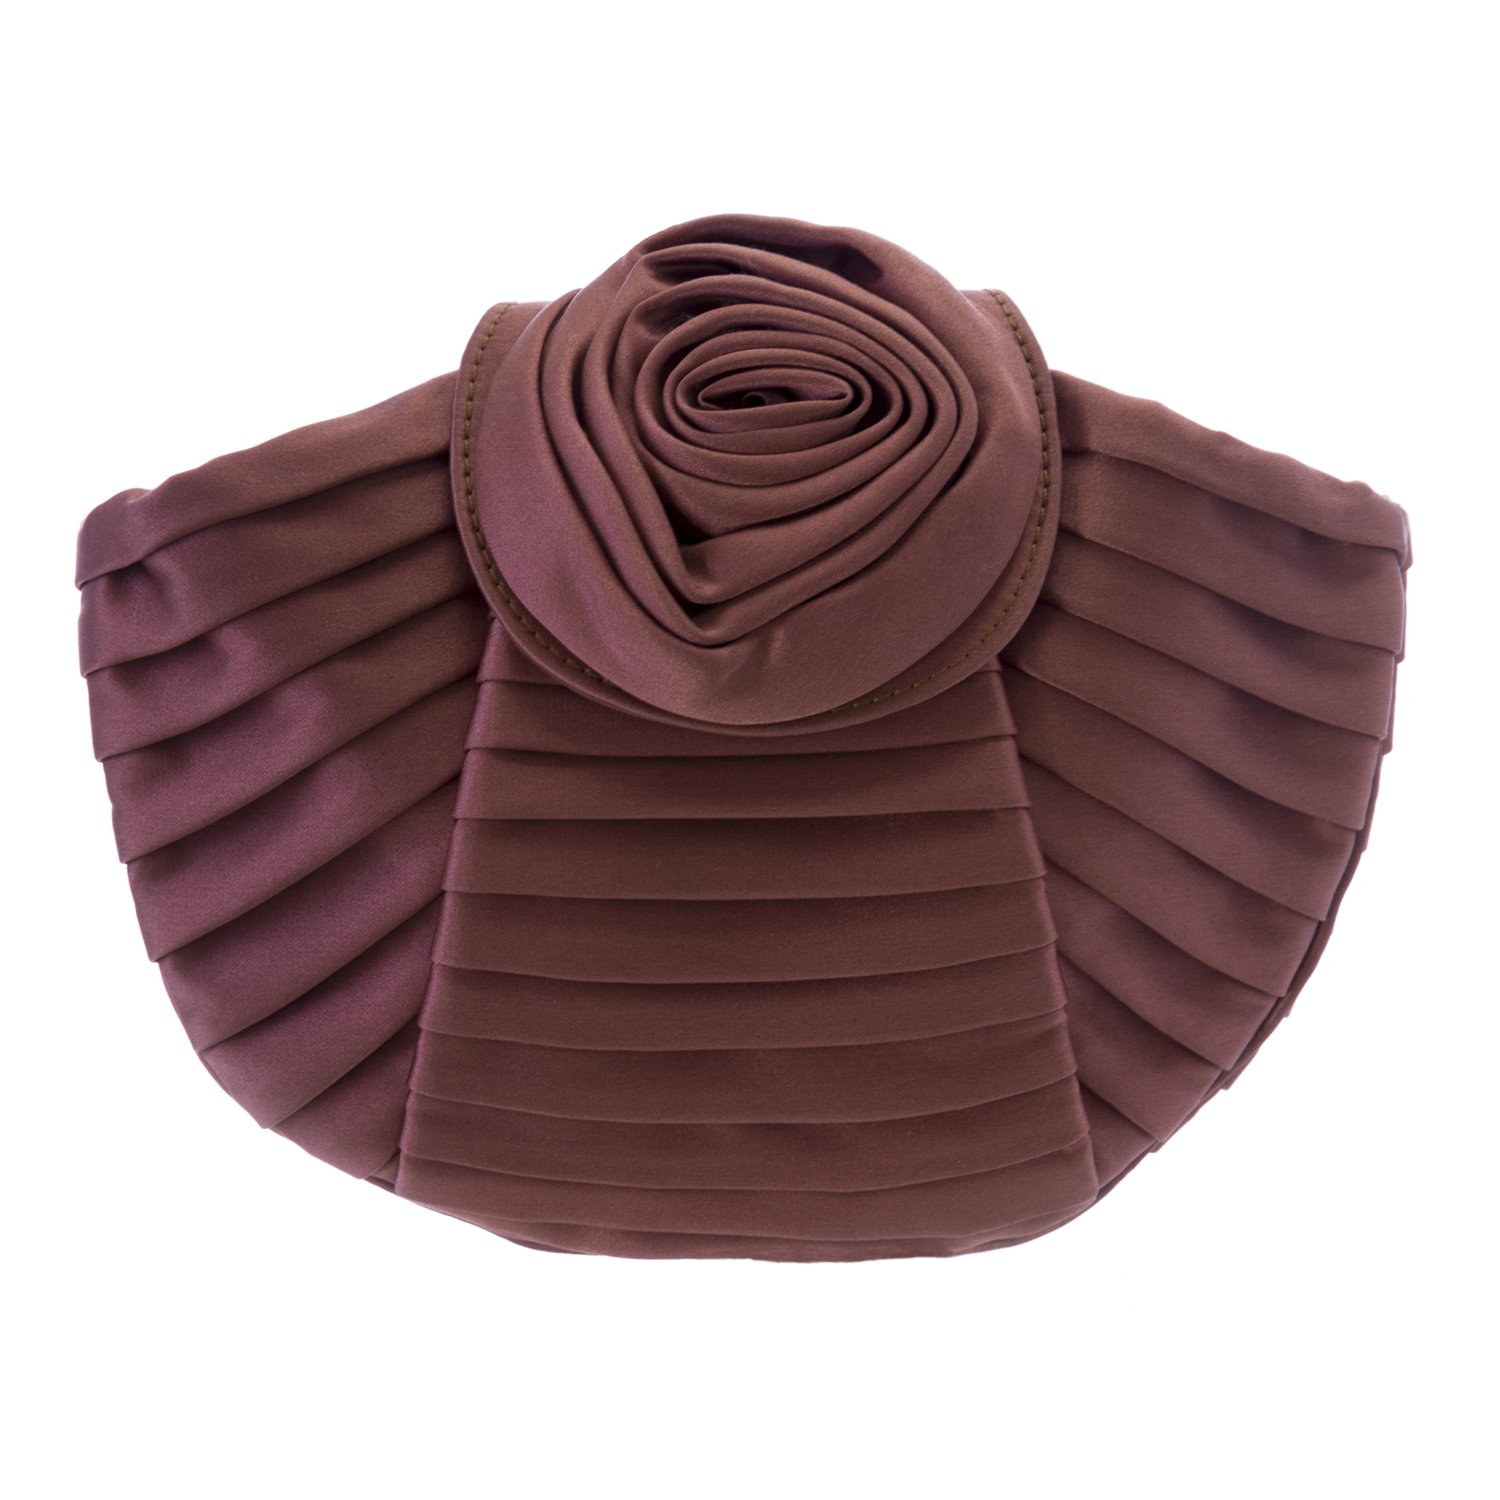 Giorgio Armani Women's Pleated Rose Clutch Mauve